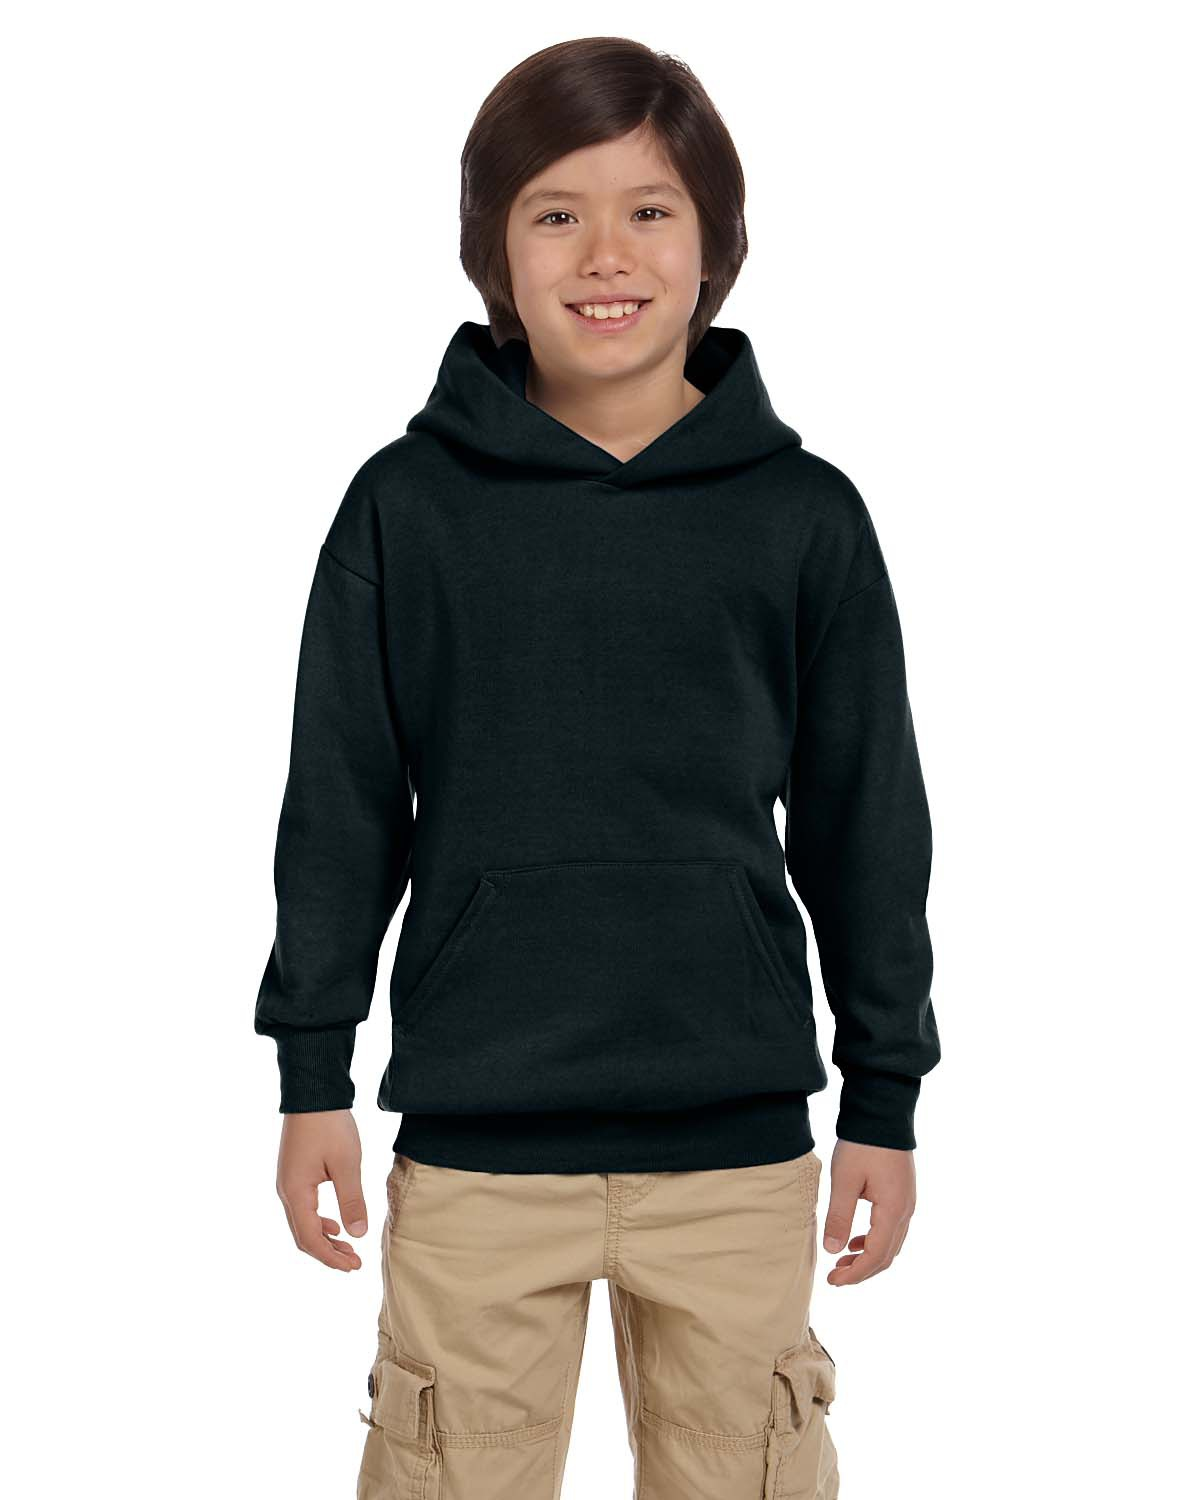 Hanes P473 - ComfortBlend EcoSmart Youth Hooded Sweatshirt